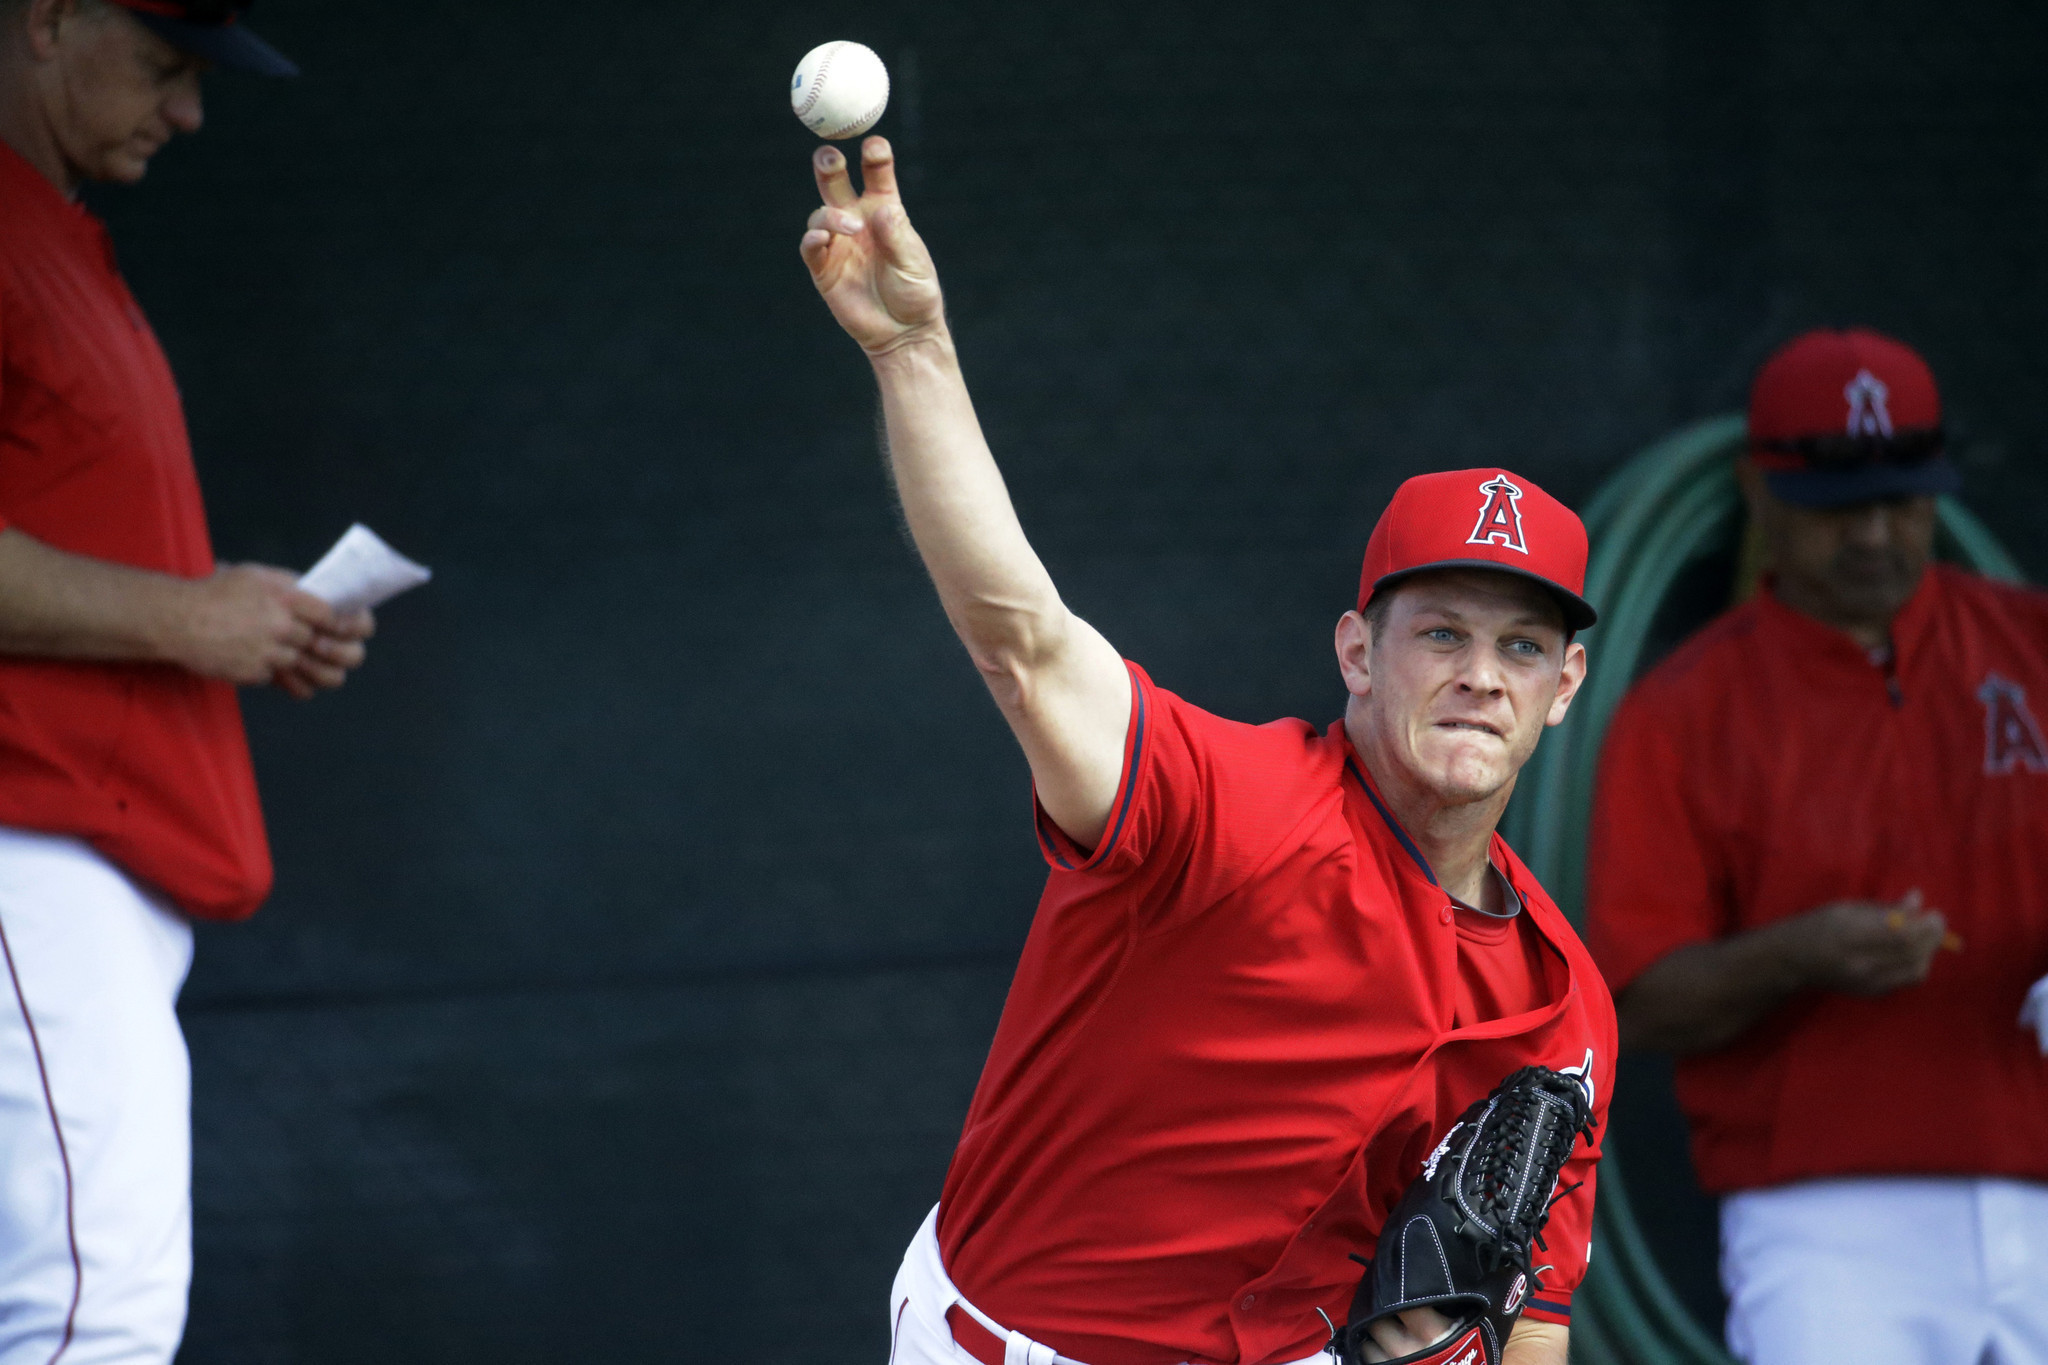 Tough baseball path about to pay off for Angels pitcher Drew Rucinski